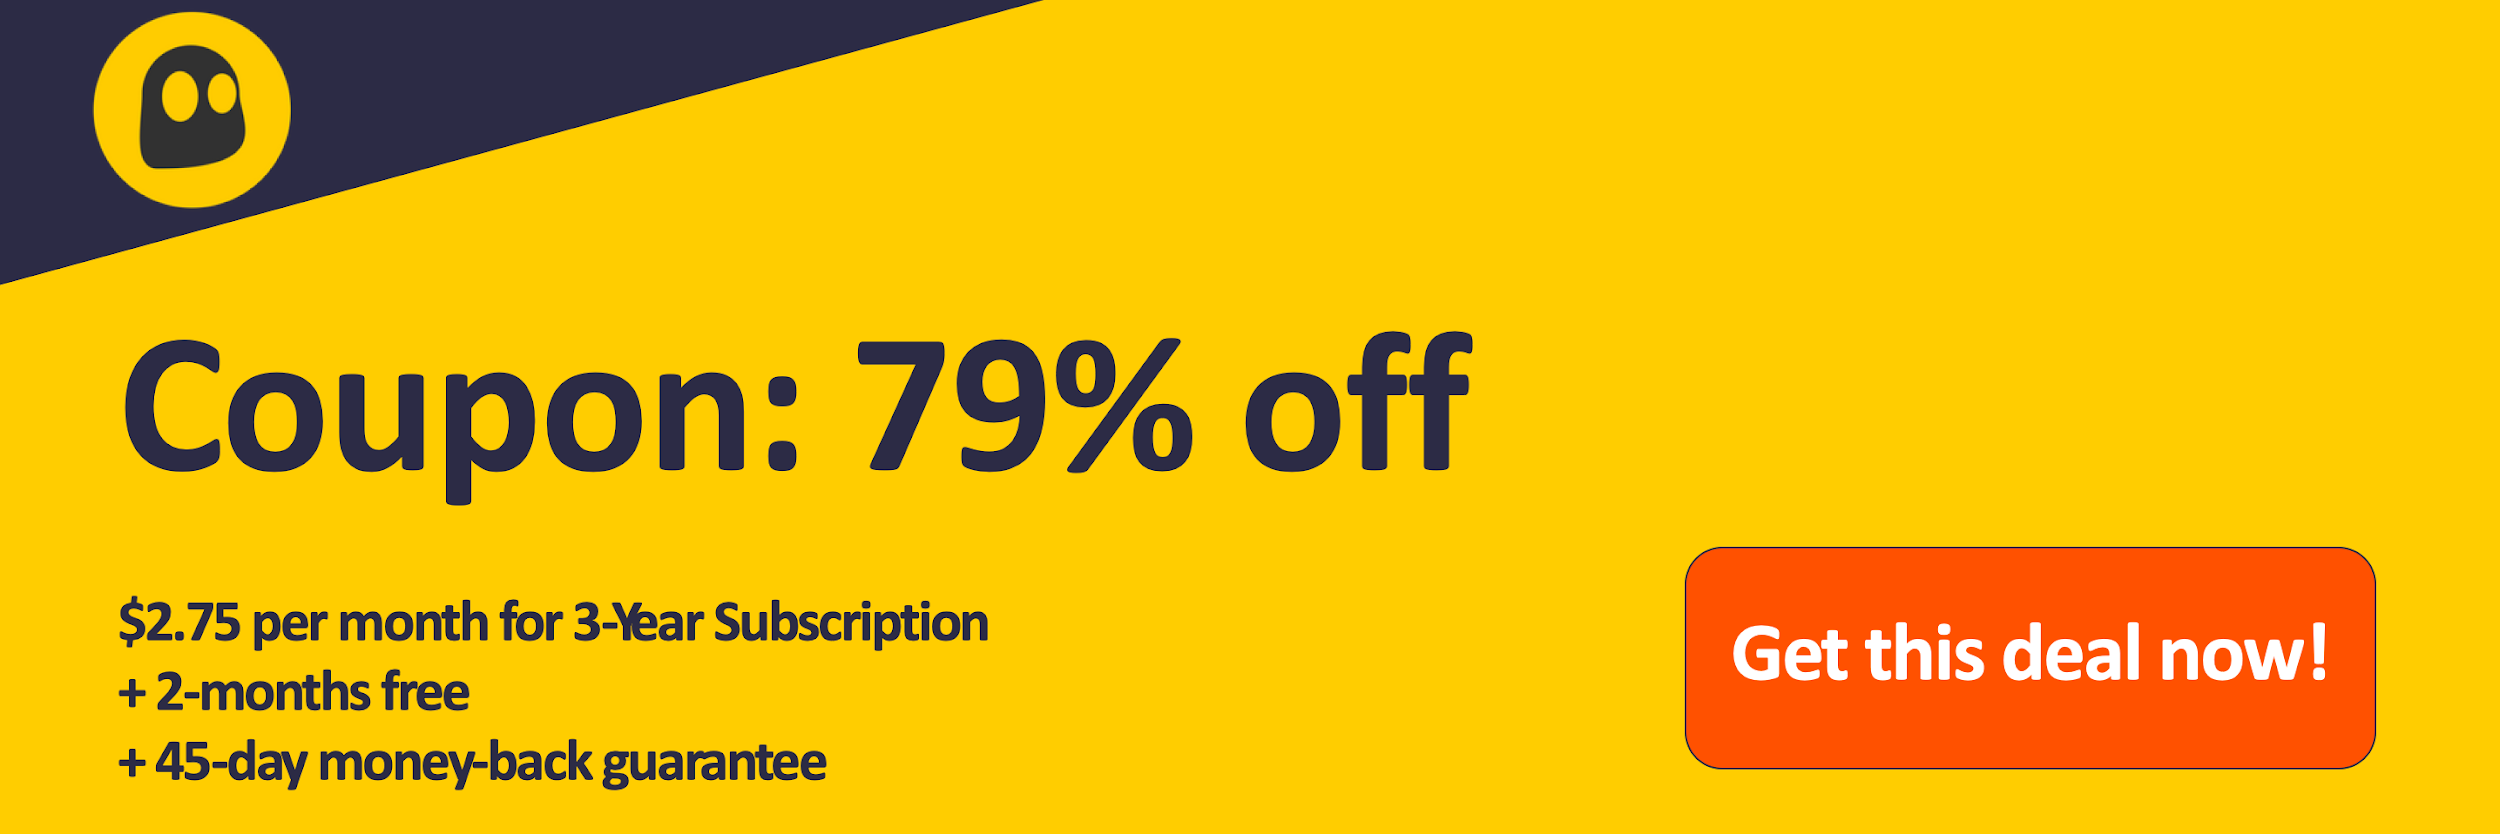 Graphic of a working CyberGhost VPN coupon offering a 79% discount which is $2.75 per month on a 3 year subscription with 2 extra months for free and a 45 day money back guarantee